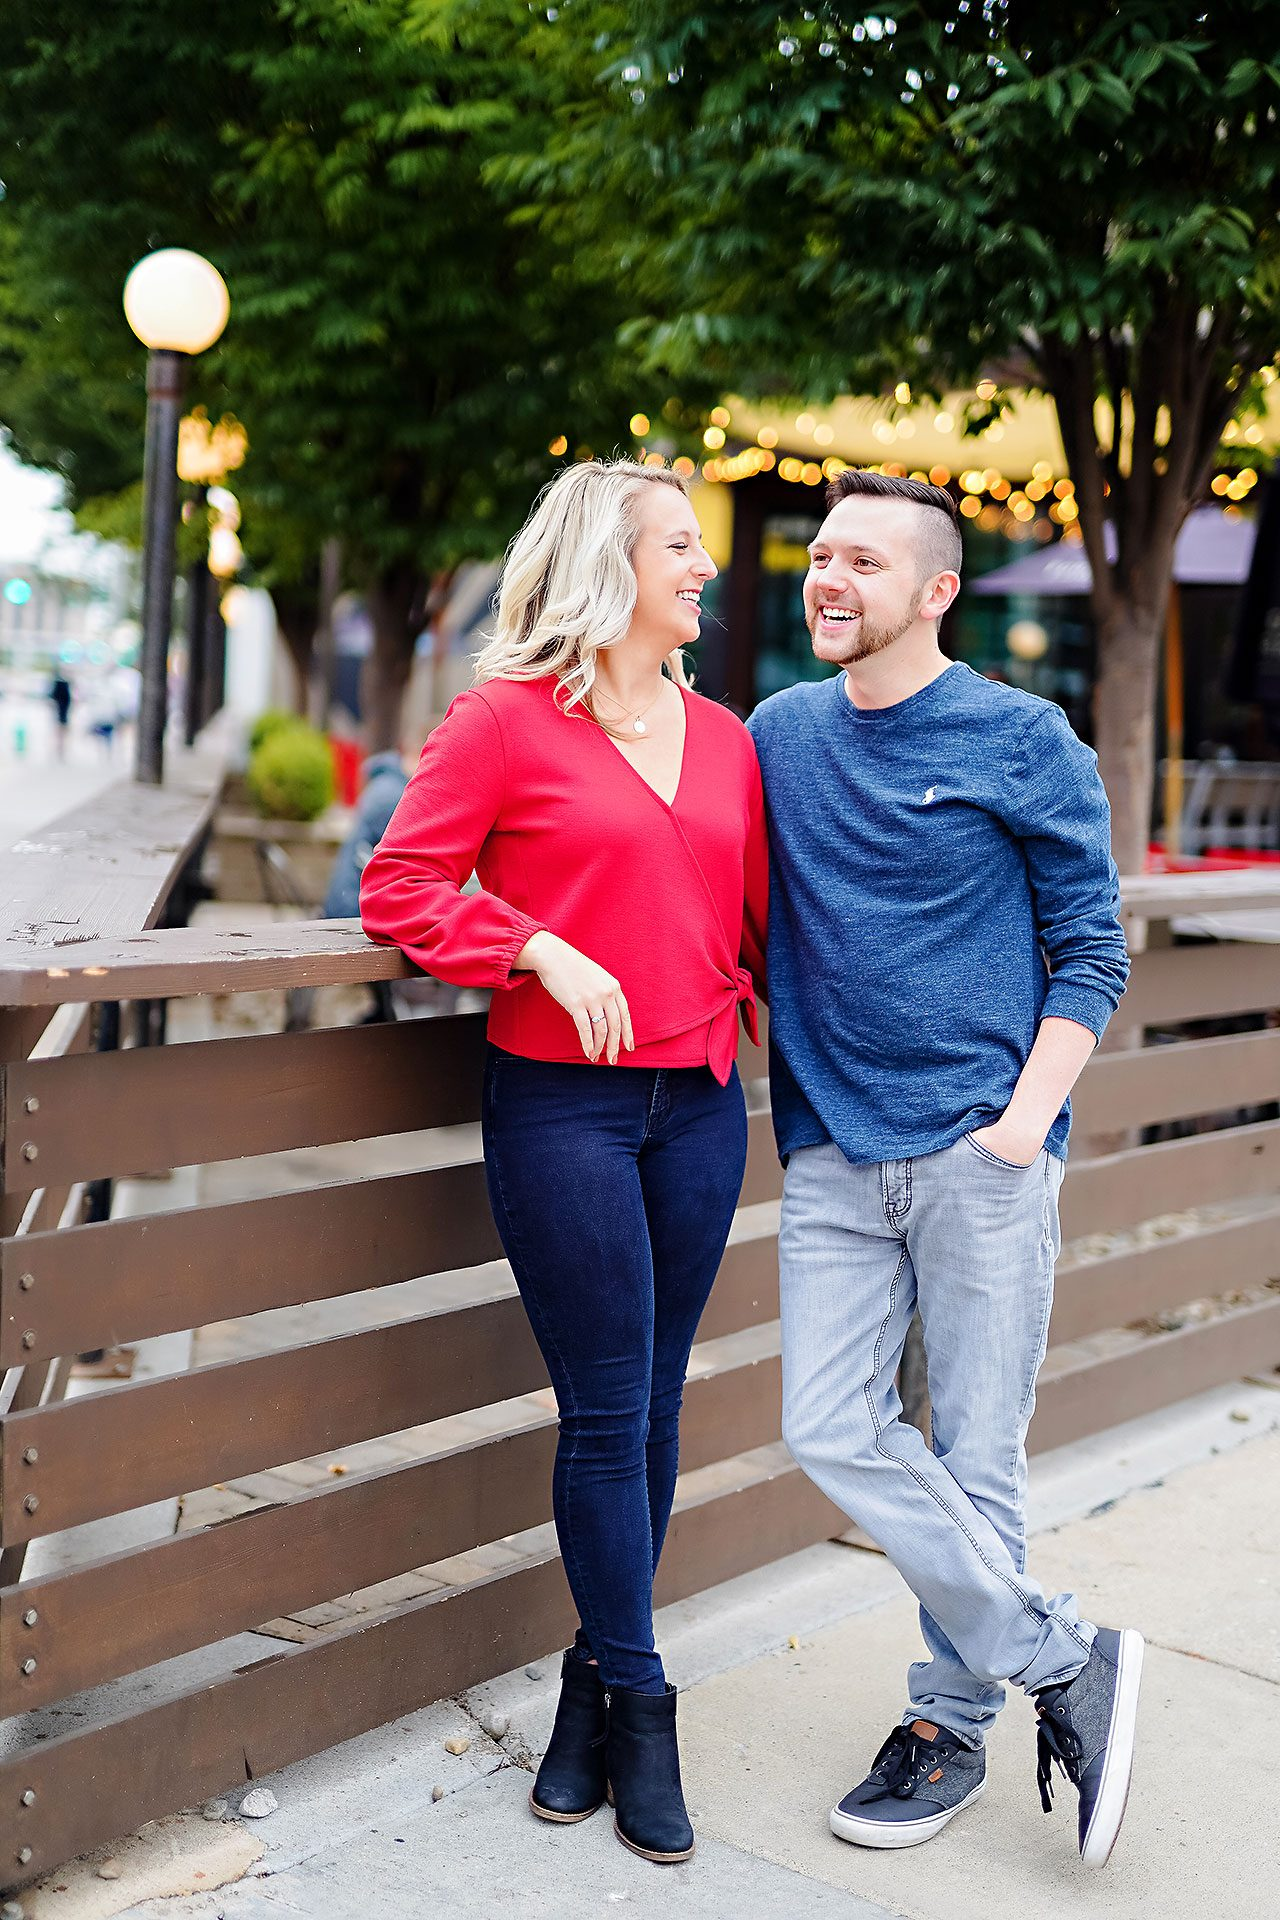 Kristen Jonny Indianapolis Downtown Engagement Session 028